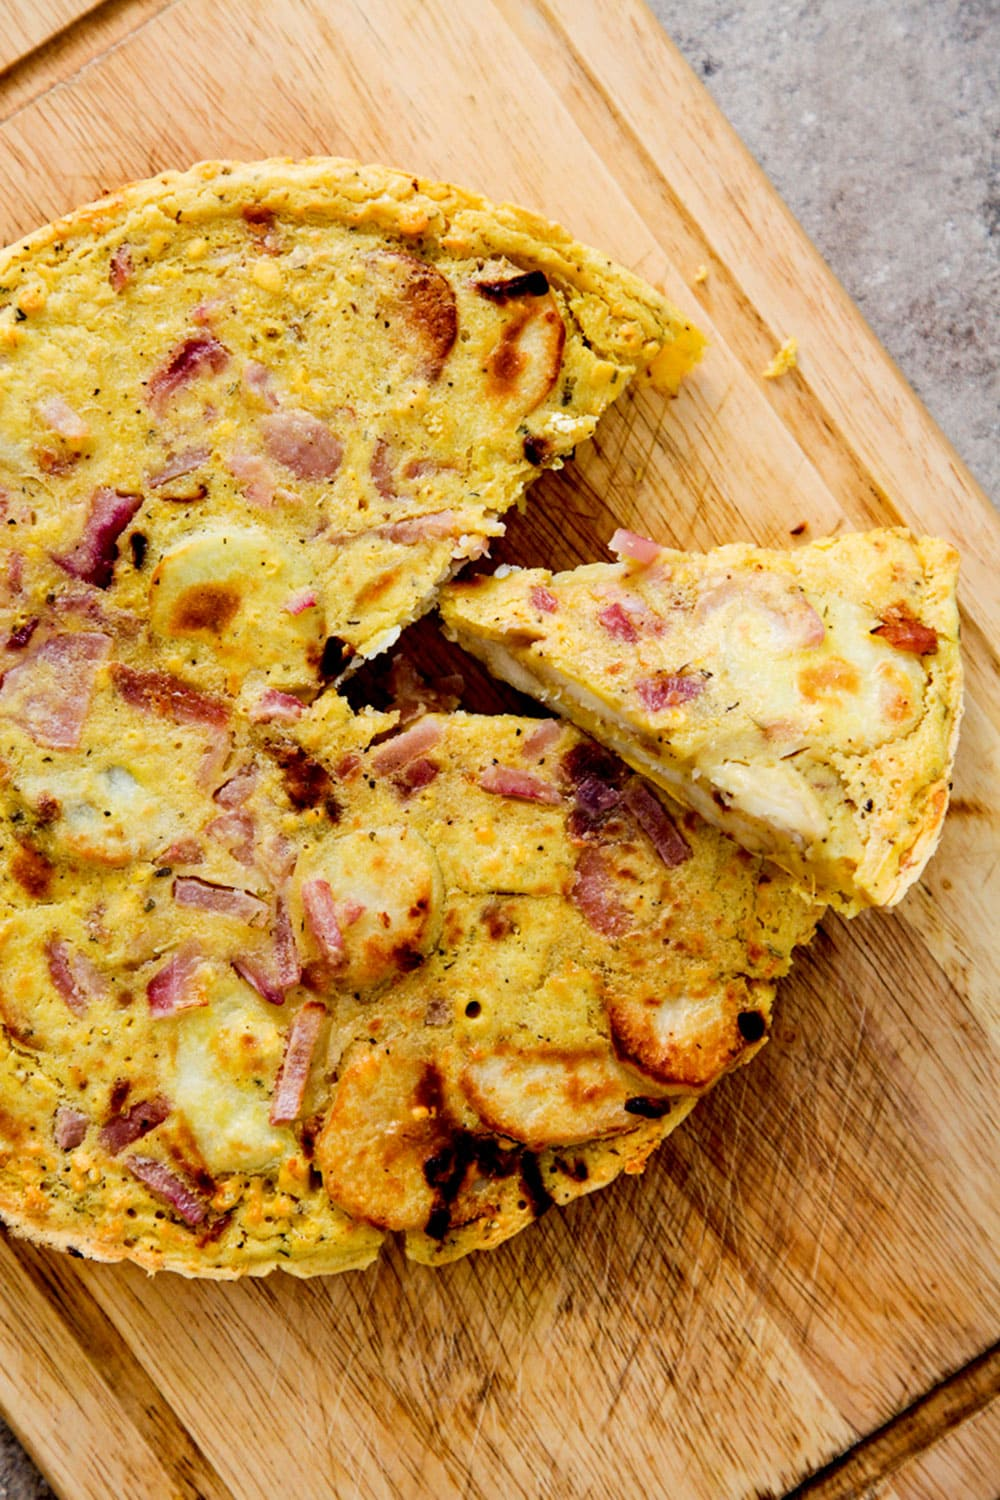 Spanish Omelette by Wall Flower Kitchen